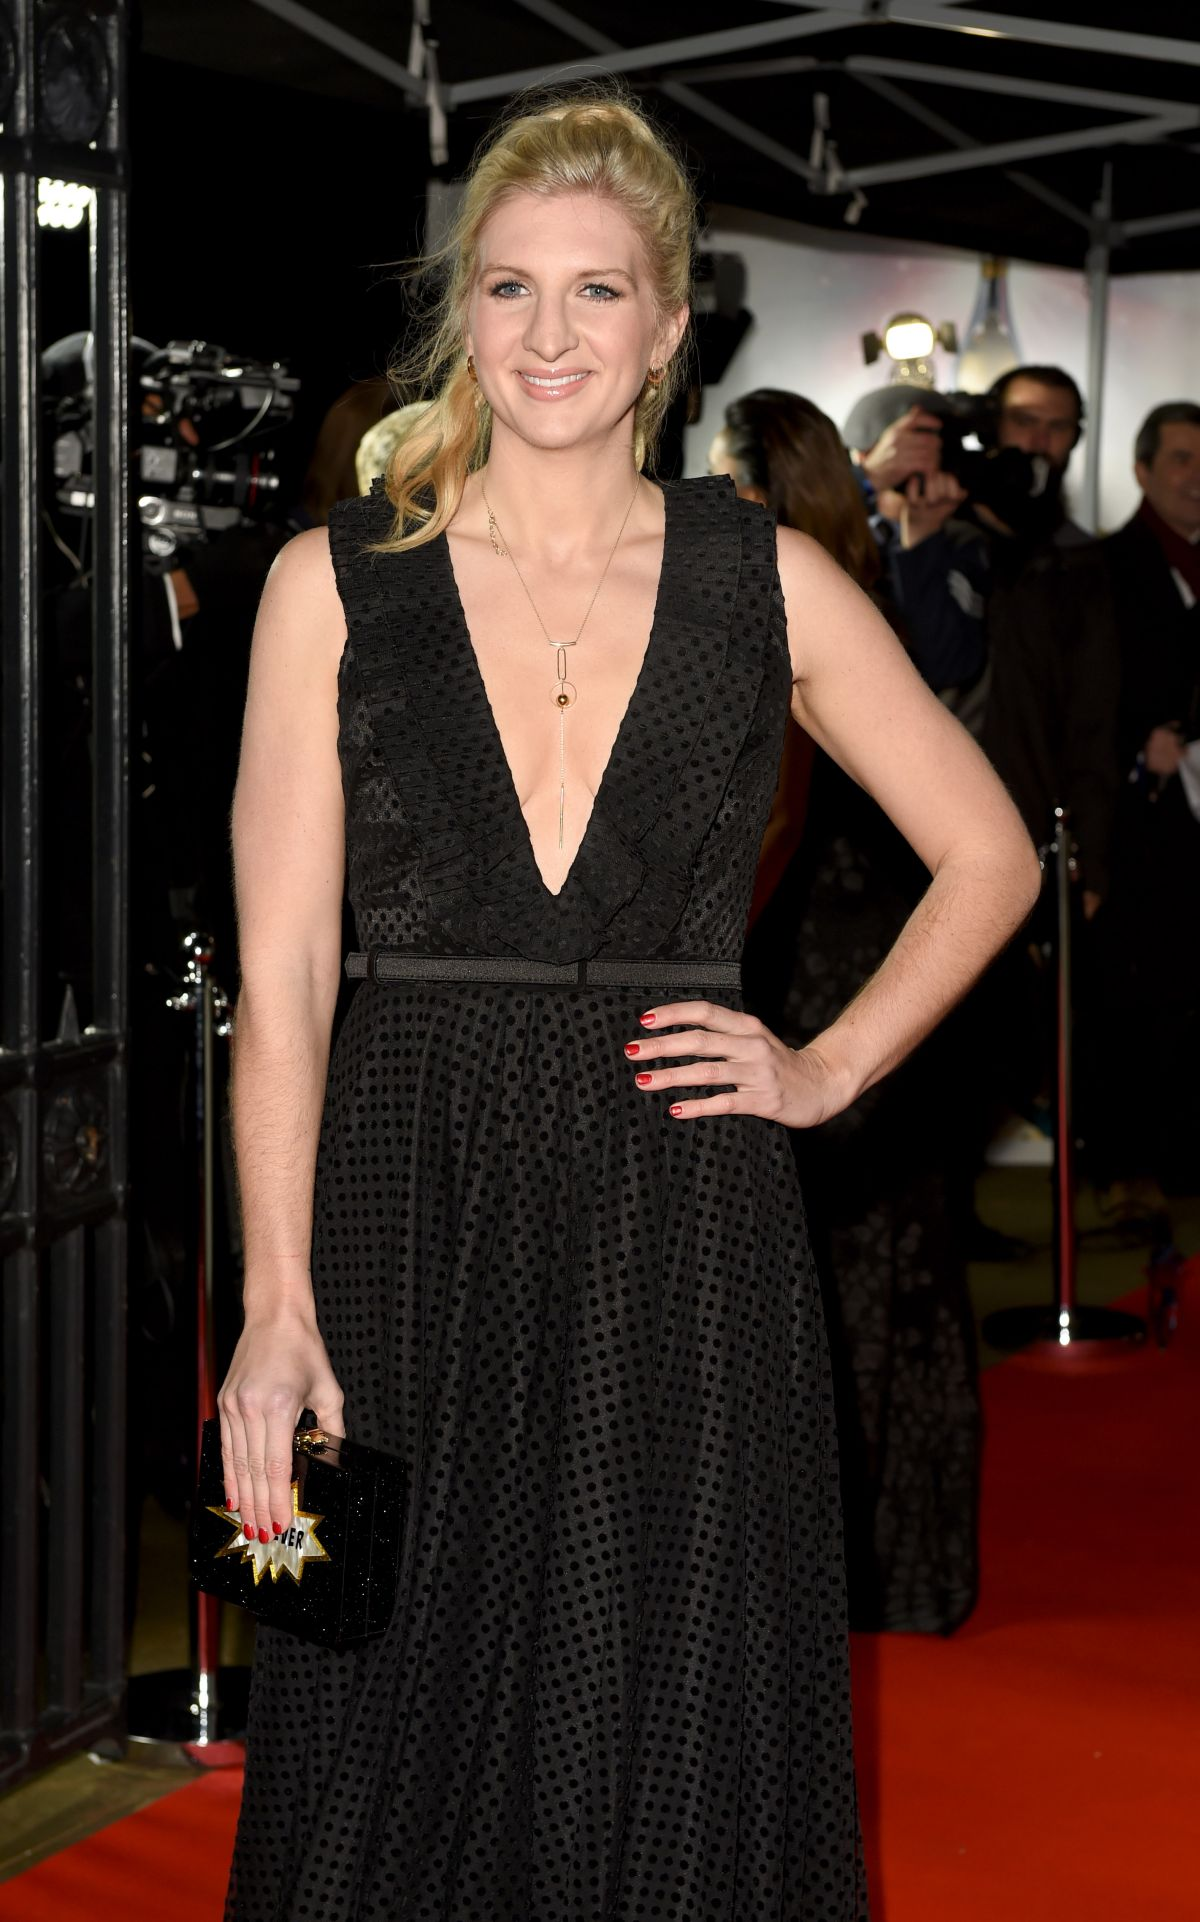 rebecca adlington - photo #24